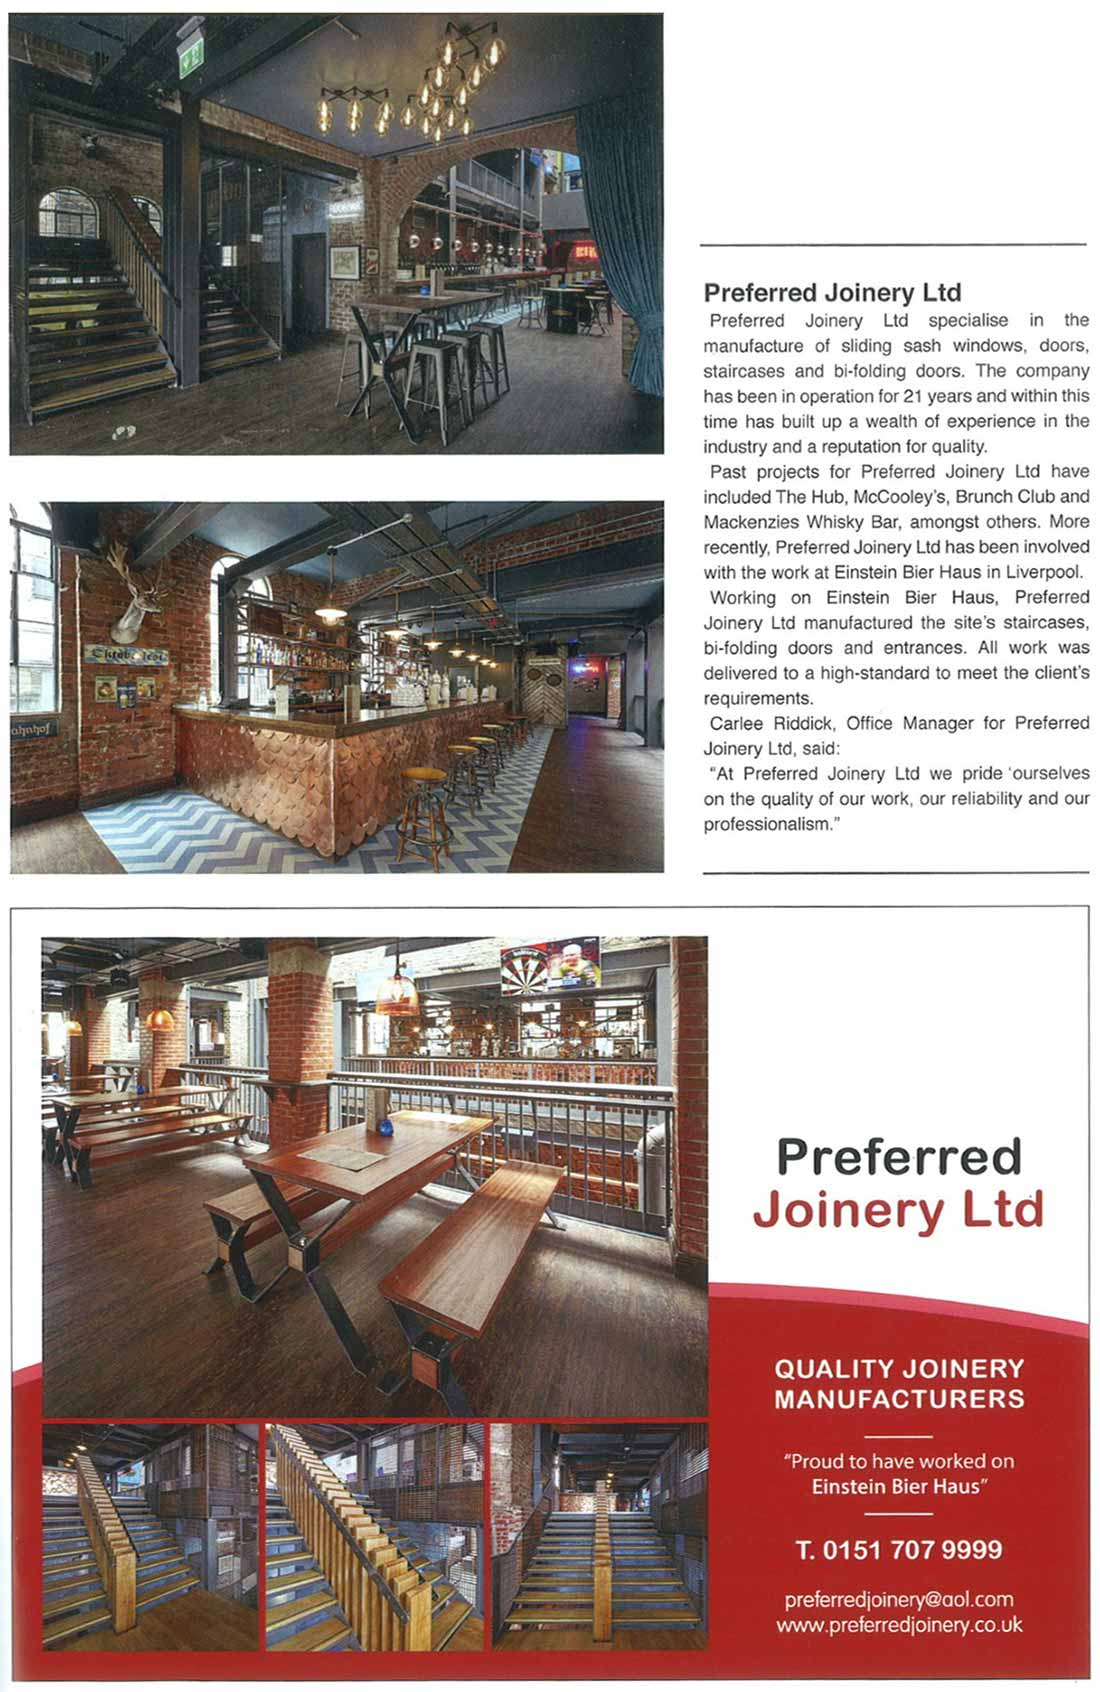 News article about Preferred Joinery LTD